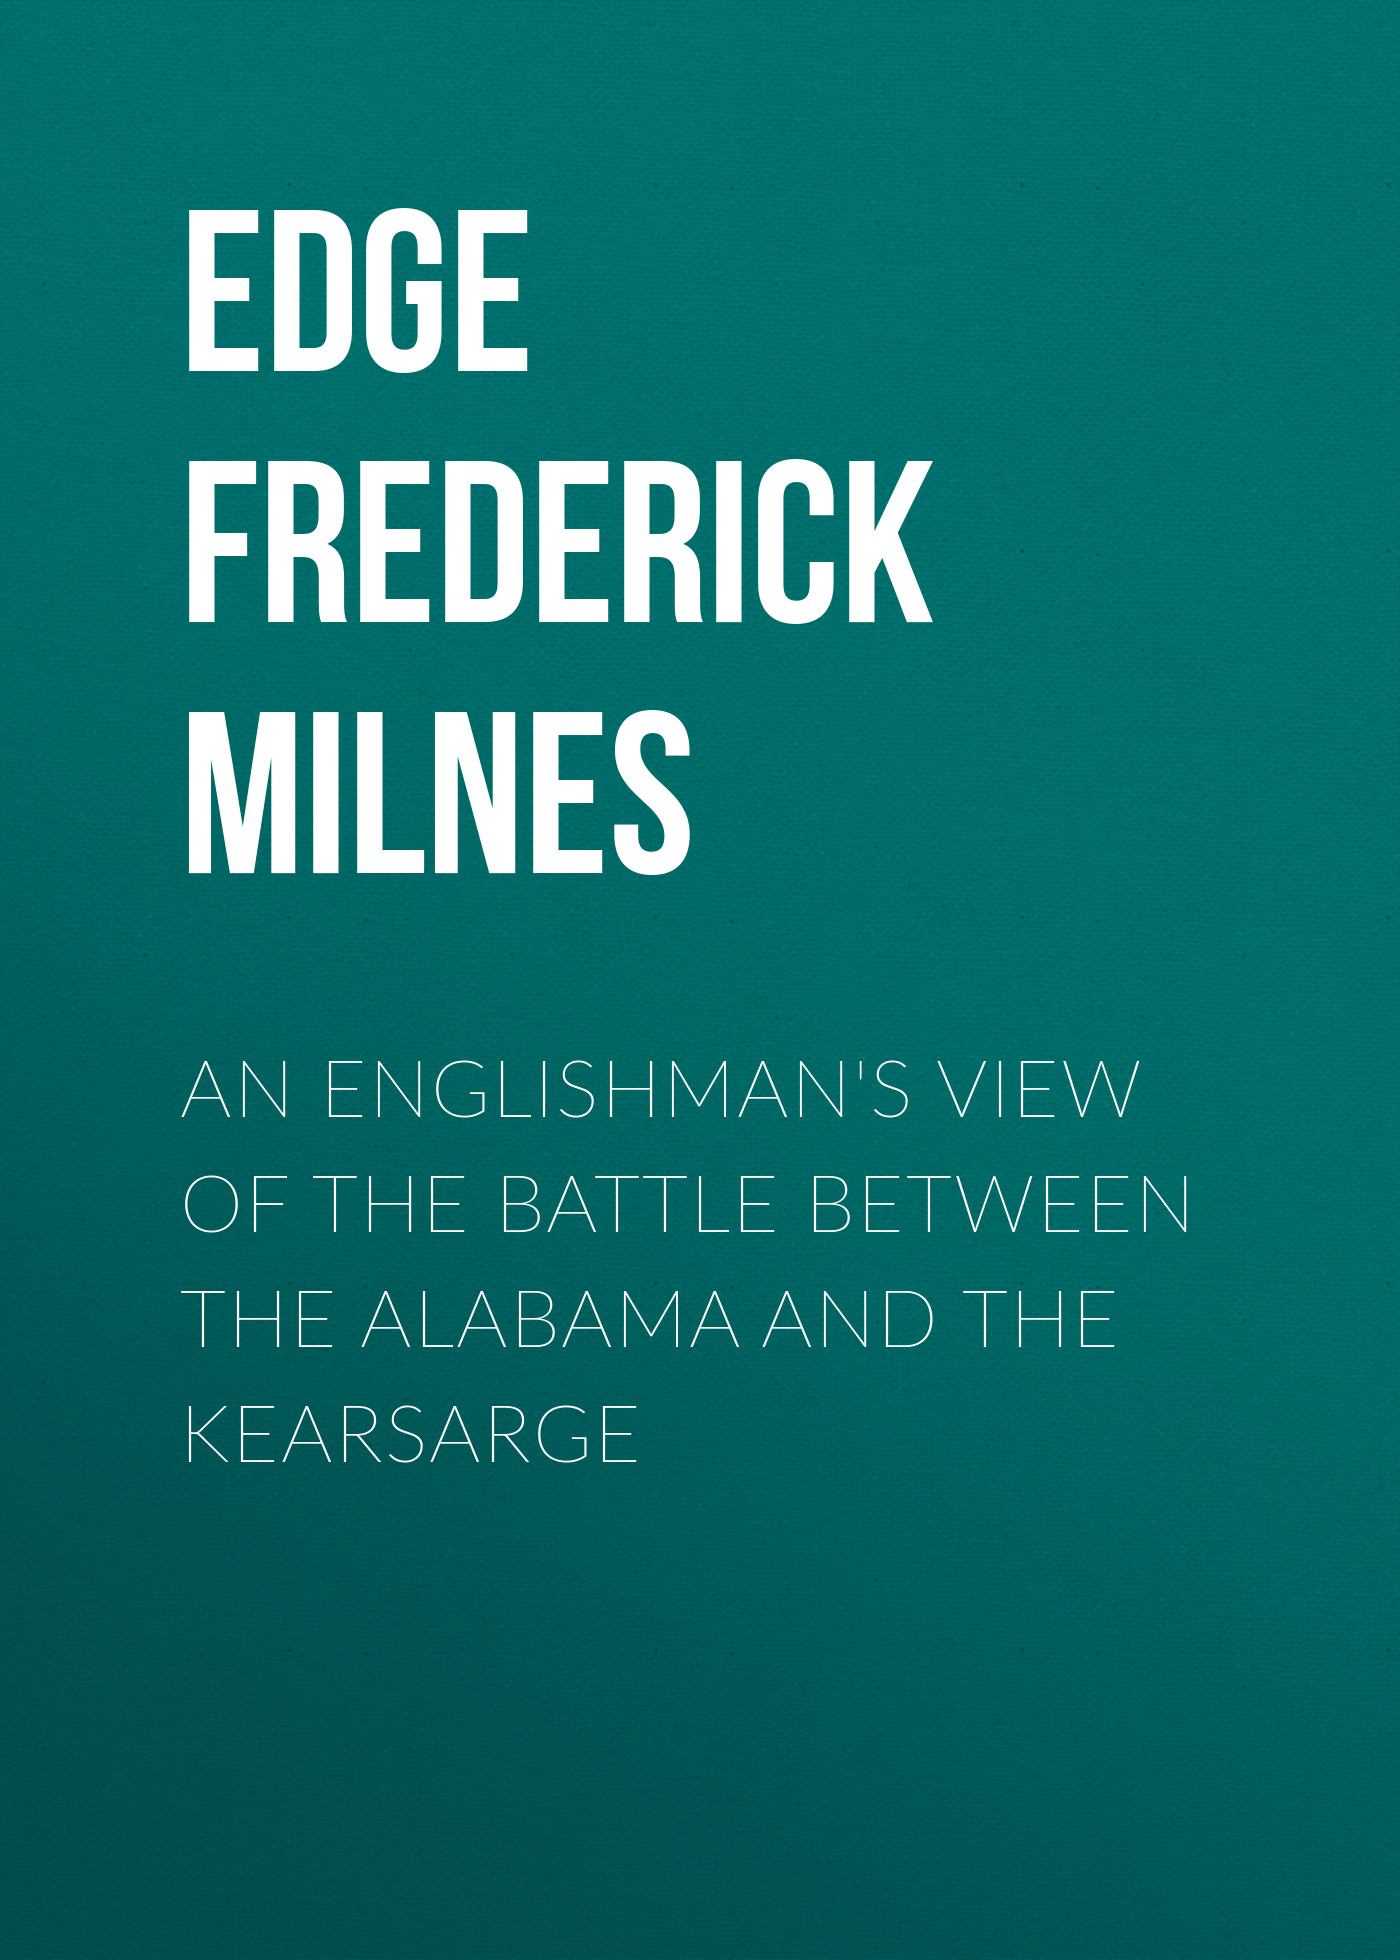 Edge Frederick Milnes An Englishman's View of the Battle between the Alabama and the Kearsarge